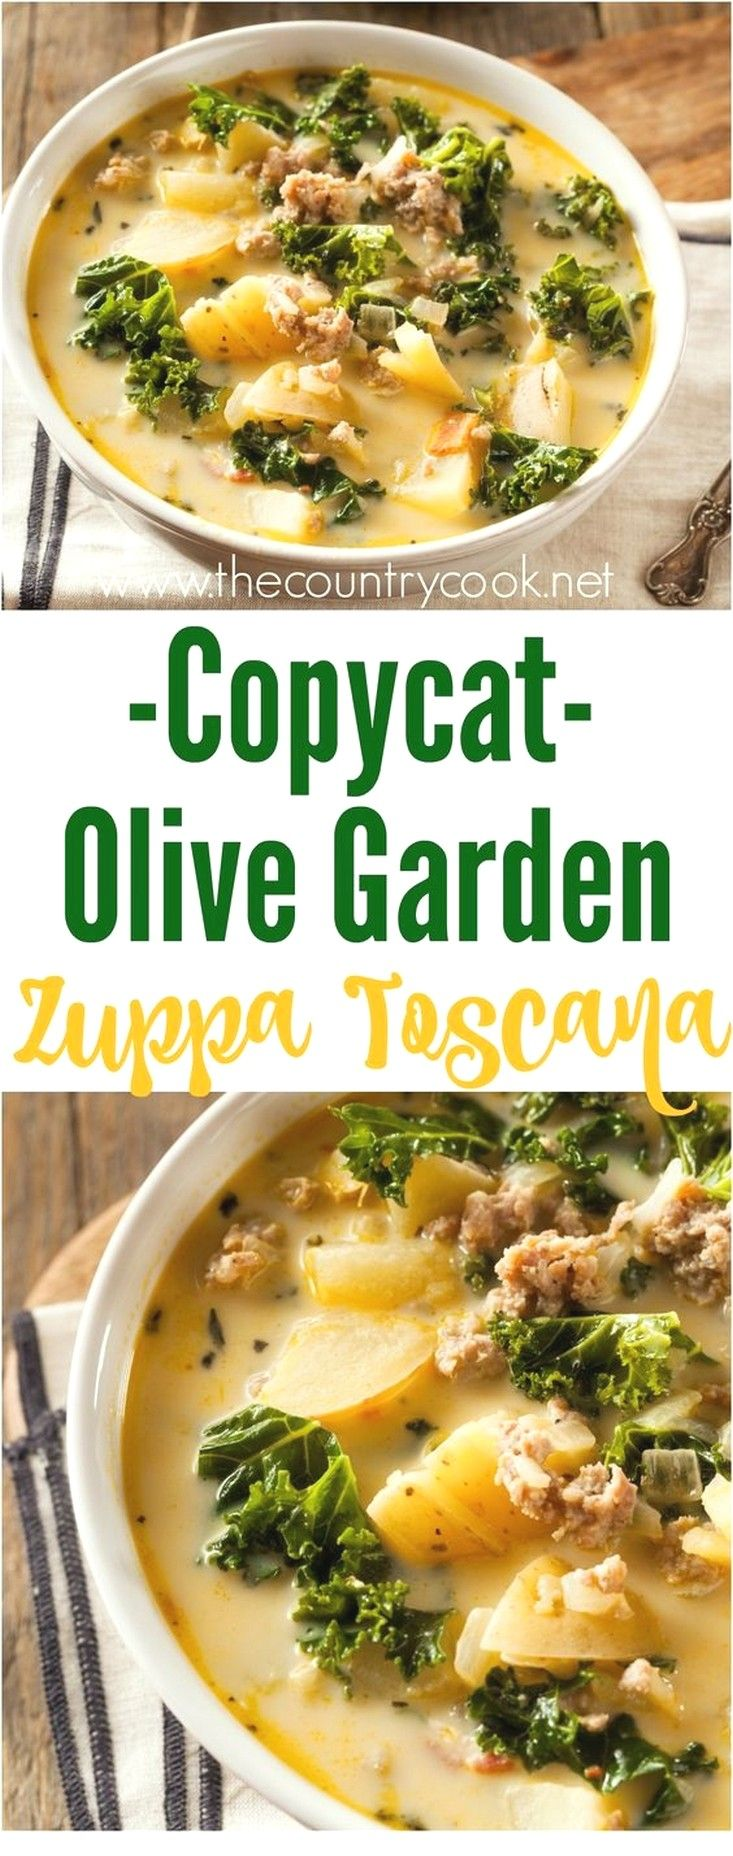 Soup Recipes Ideas | Copycat Olive Garden Zuppa Toscana images